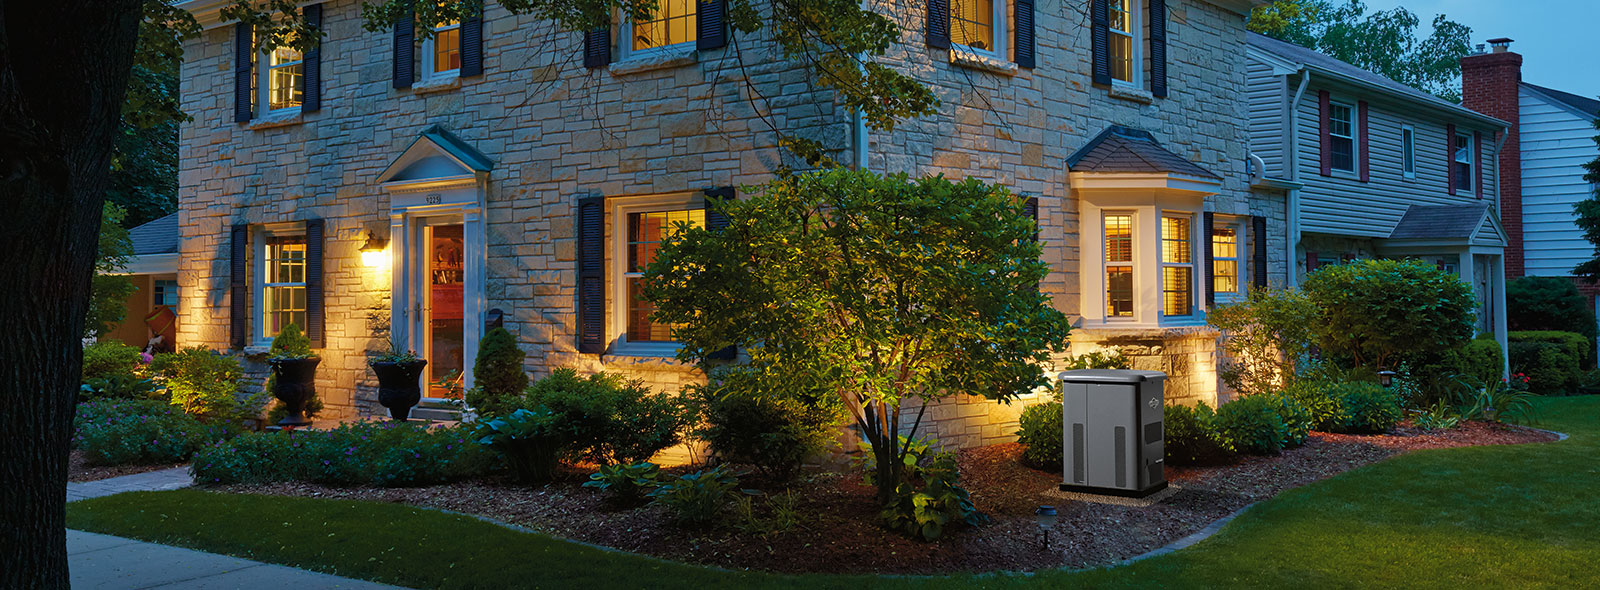 Buying Guide for Standby Home Generators